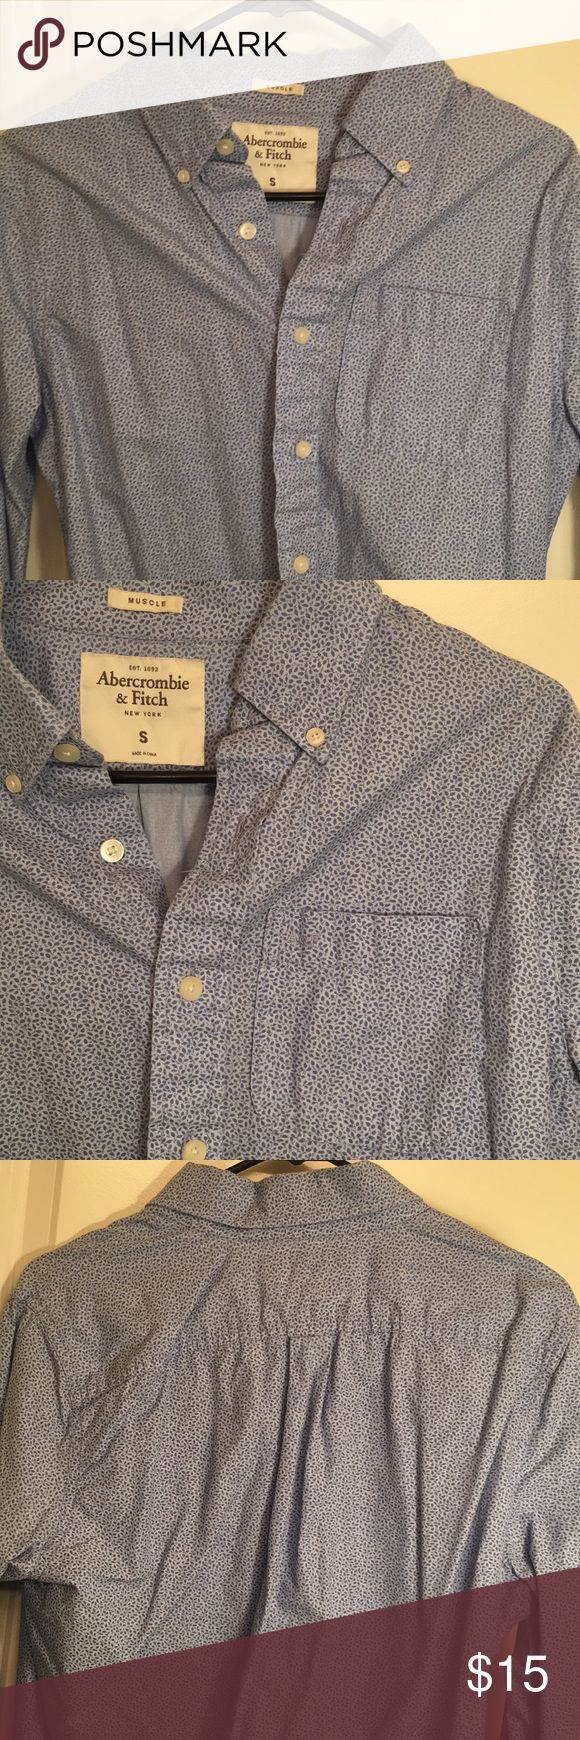 A&F Muscle Shirt Abercrombie & Fitch Muscle Dress Shirt Abercrombie & Fitch Shirts Casual Button Down Shirts